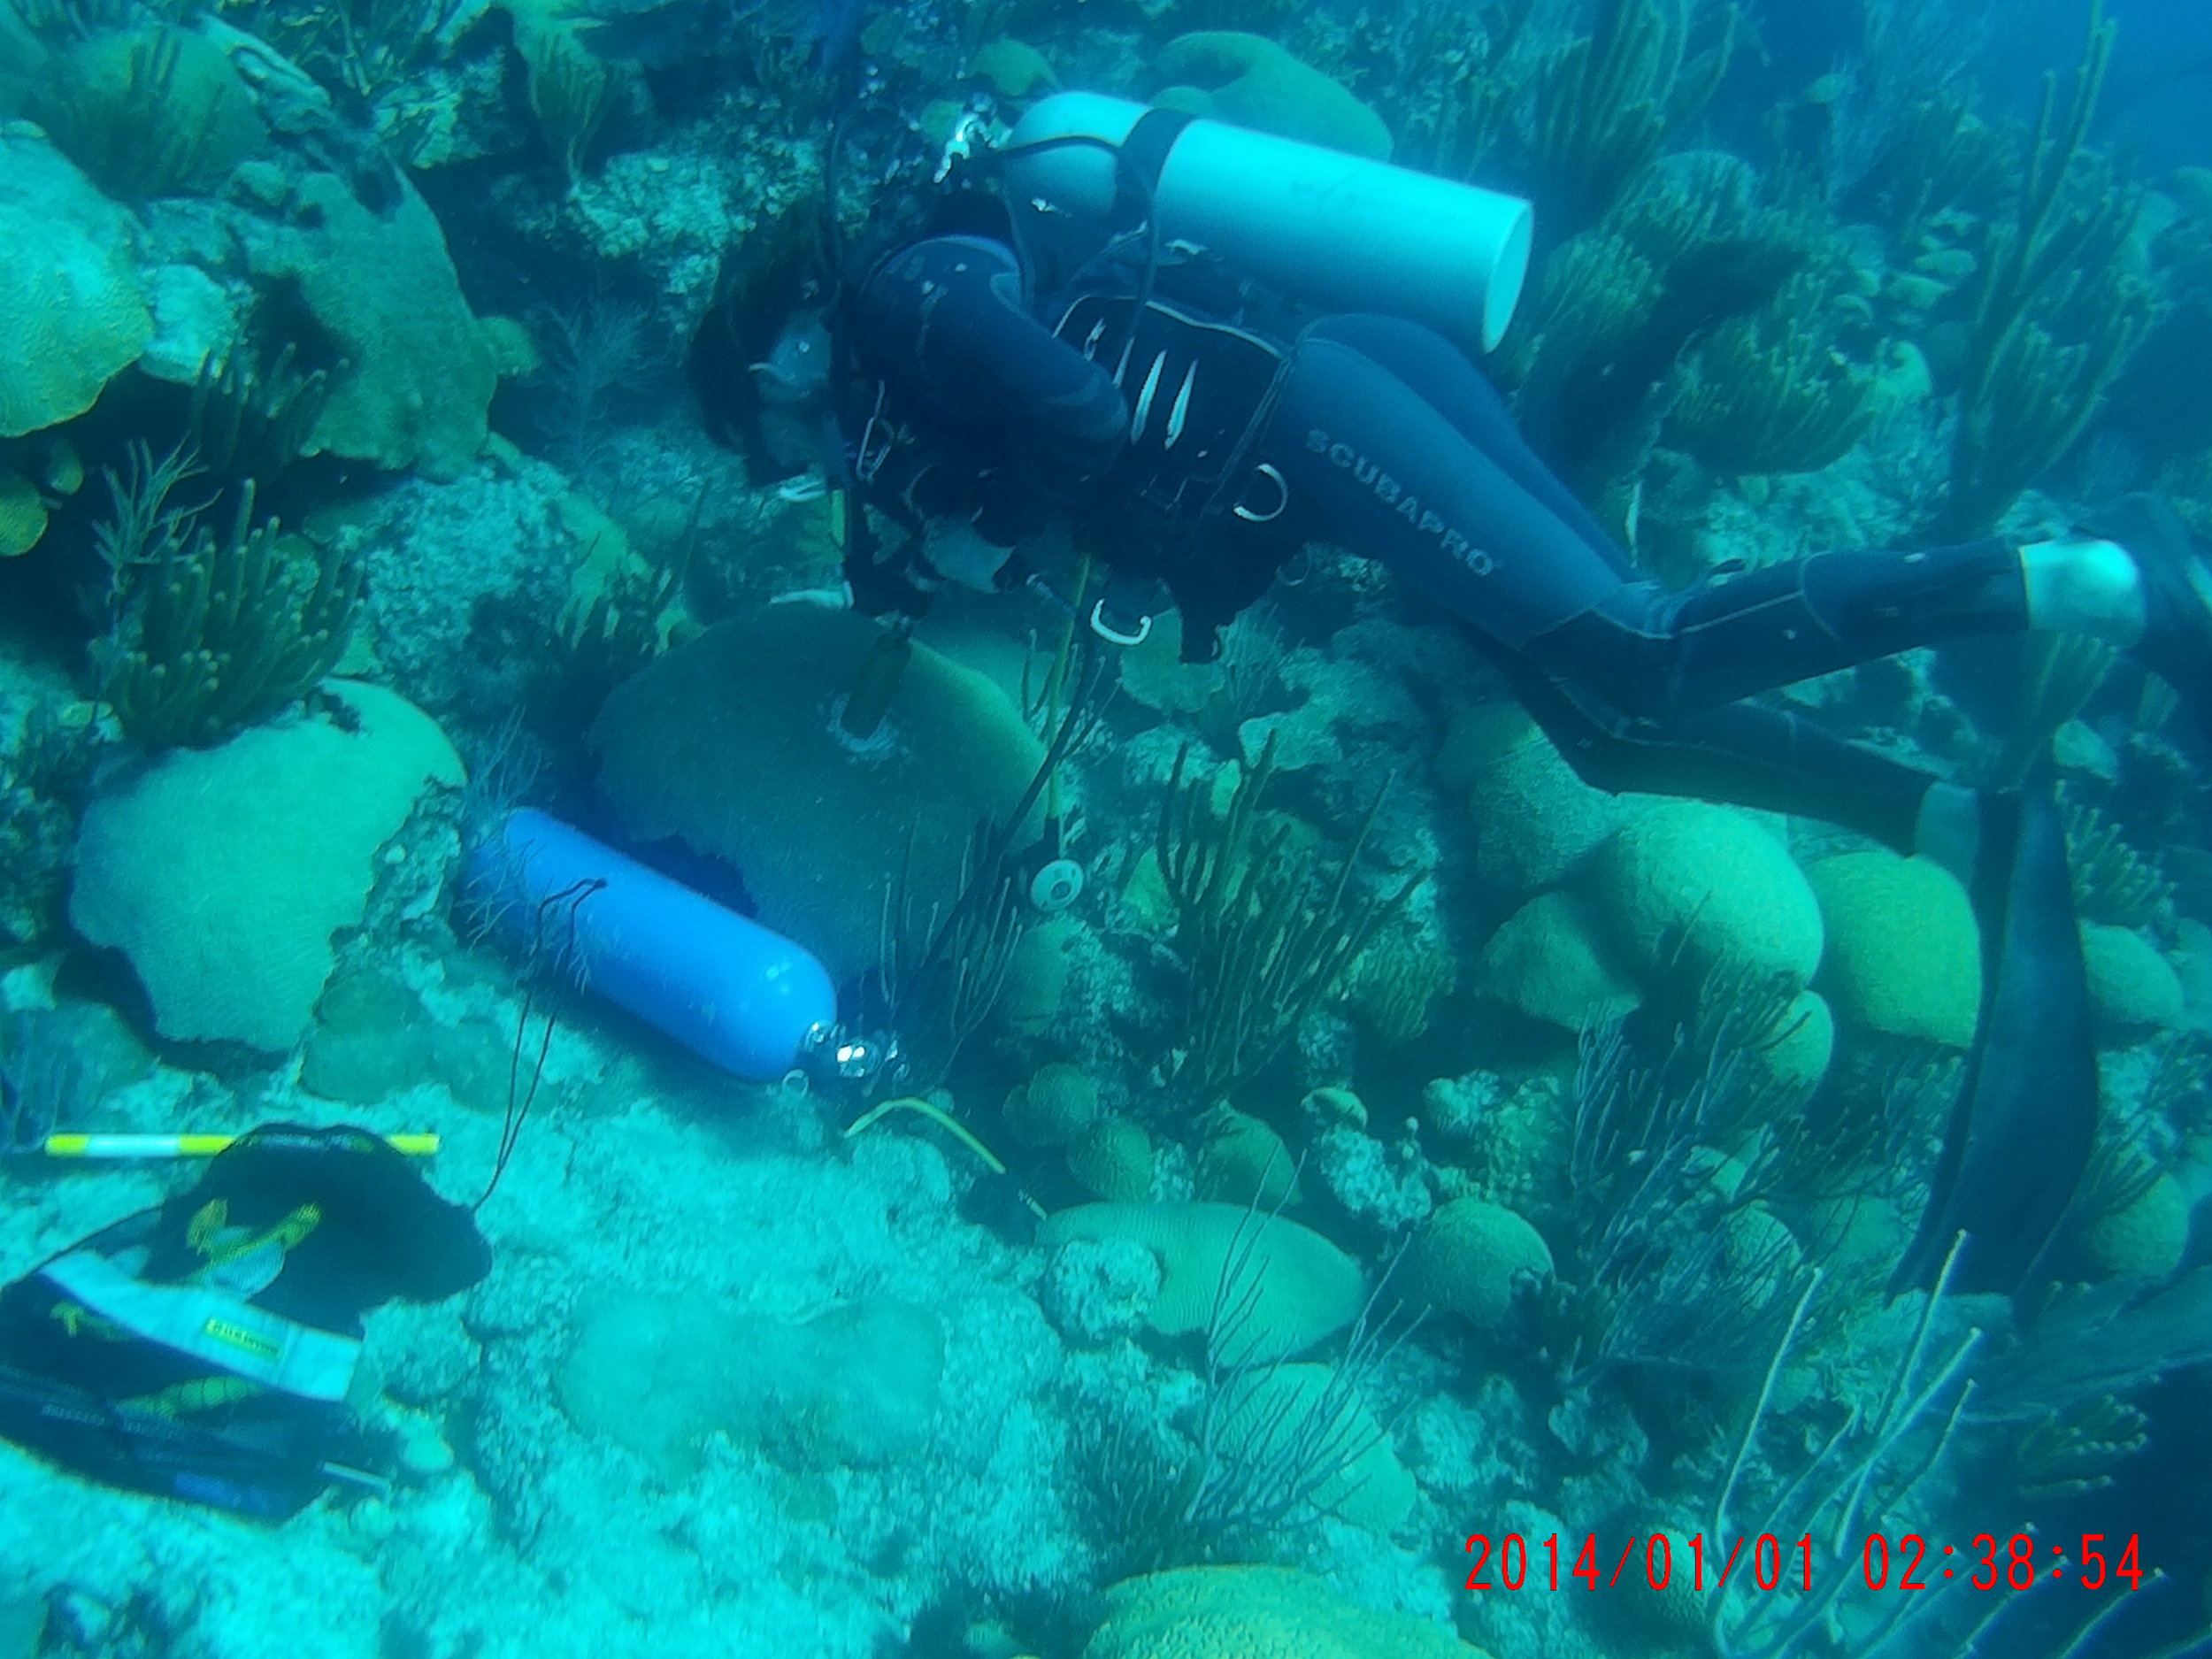 Figure 5. BIOS dive team member coring coral adjacent to Hog Reef CO2 buoy, Bermuda